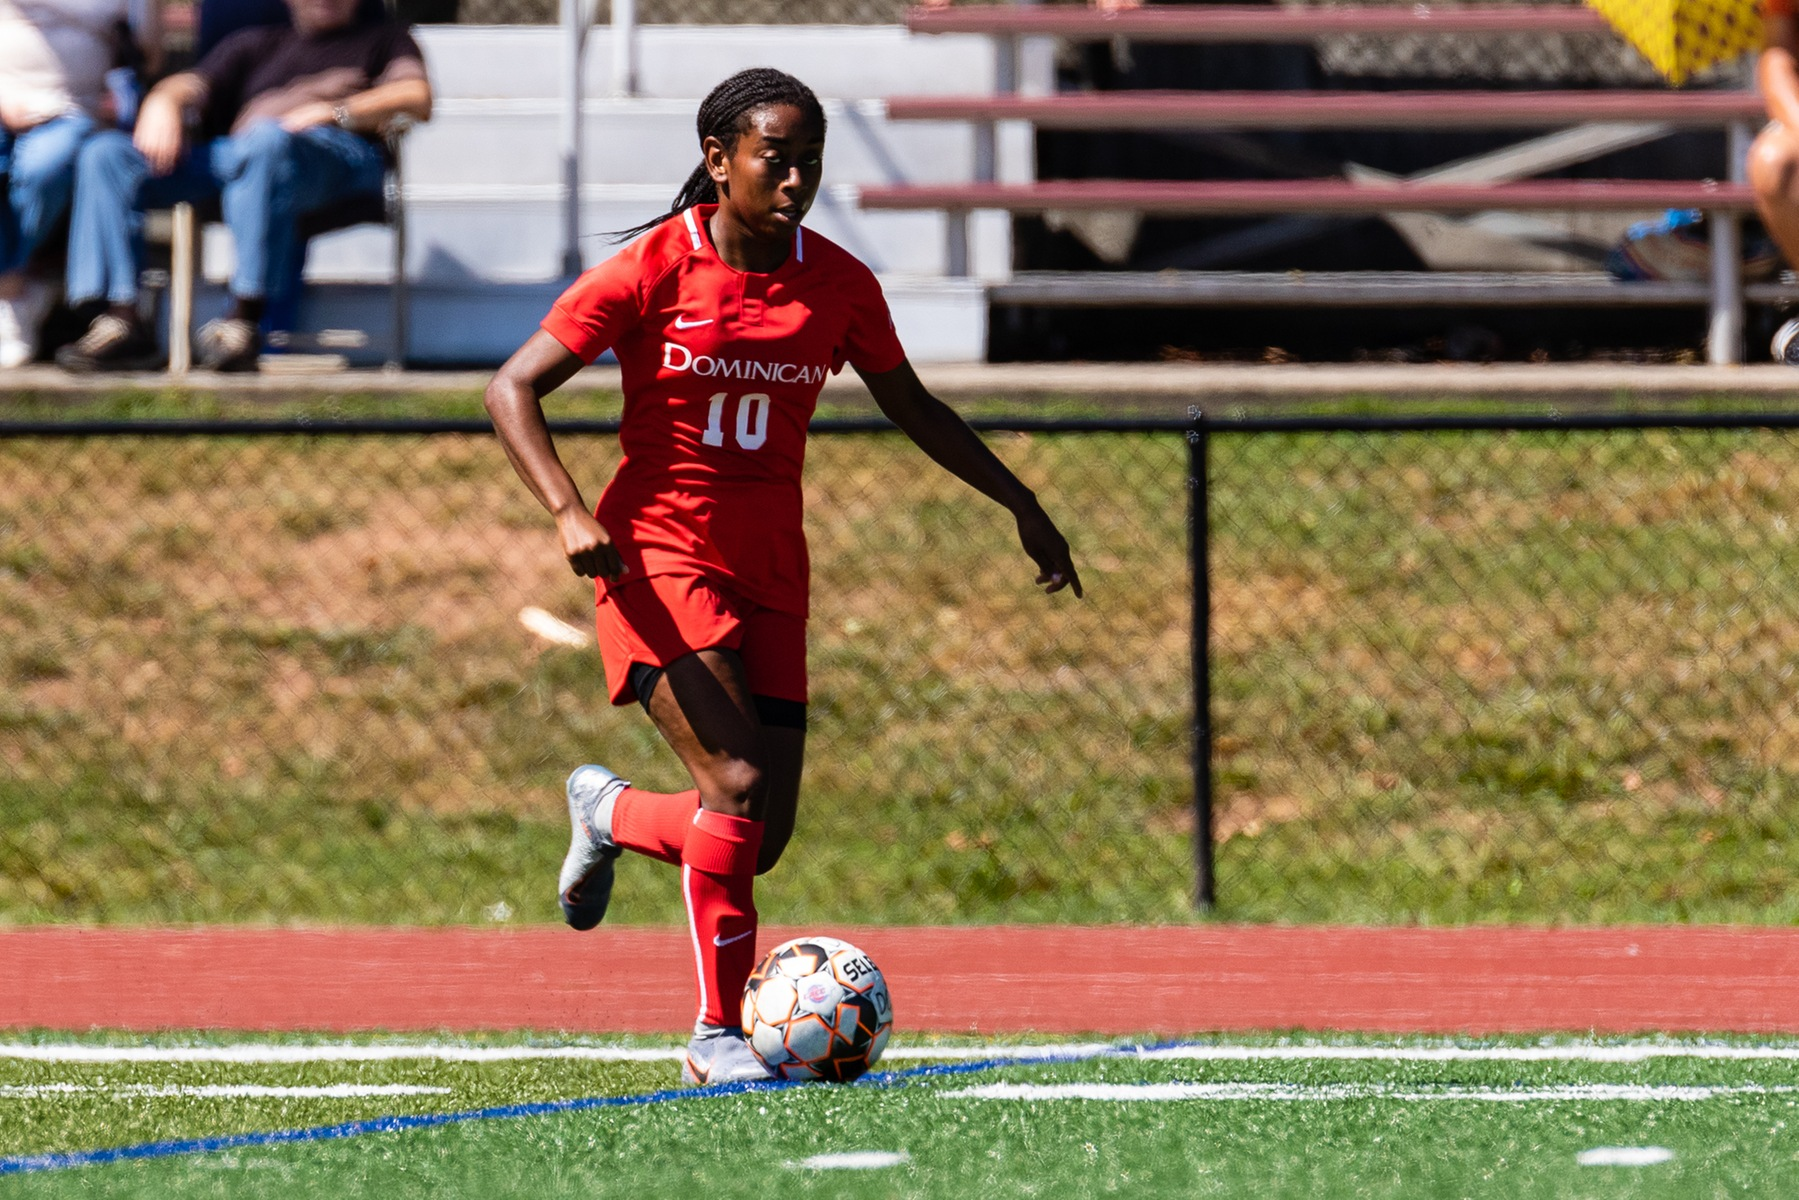 JEFFERSON BEATS WOMEN'S SOCCER